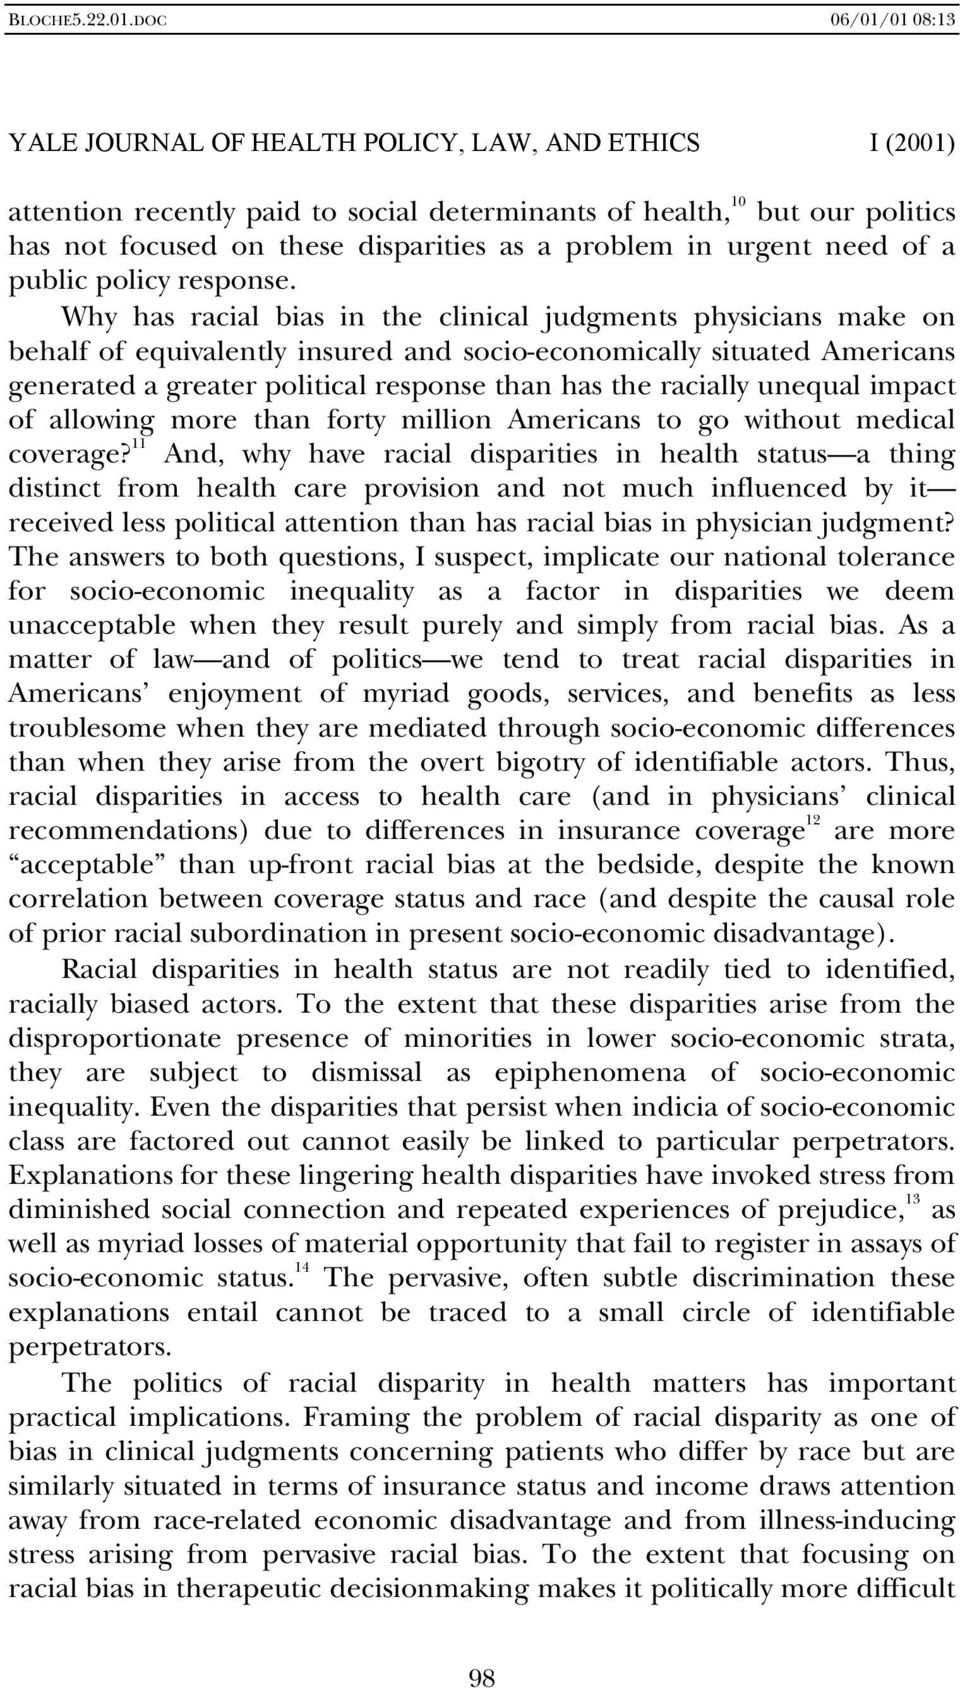 Why has racial bias in the clinical judgments physicians make on behalf of equivalently insured and socio-economically situated Americans generated a greater political response than has the racially